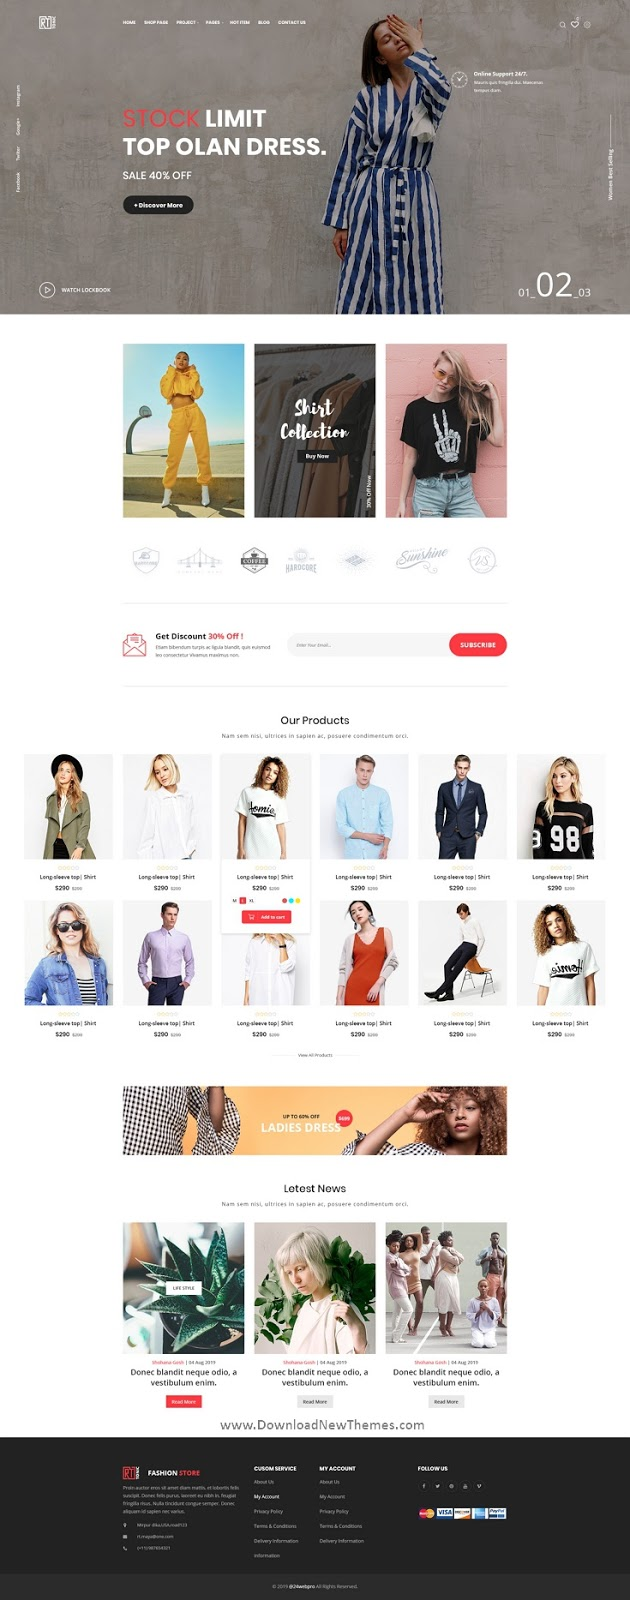 Premium Multipurpose eCommerce PSD Template